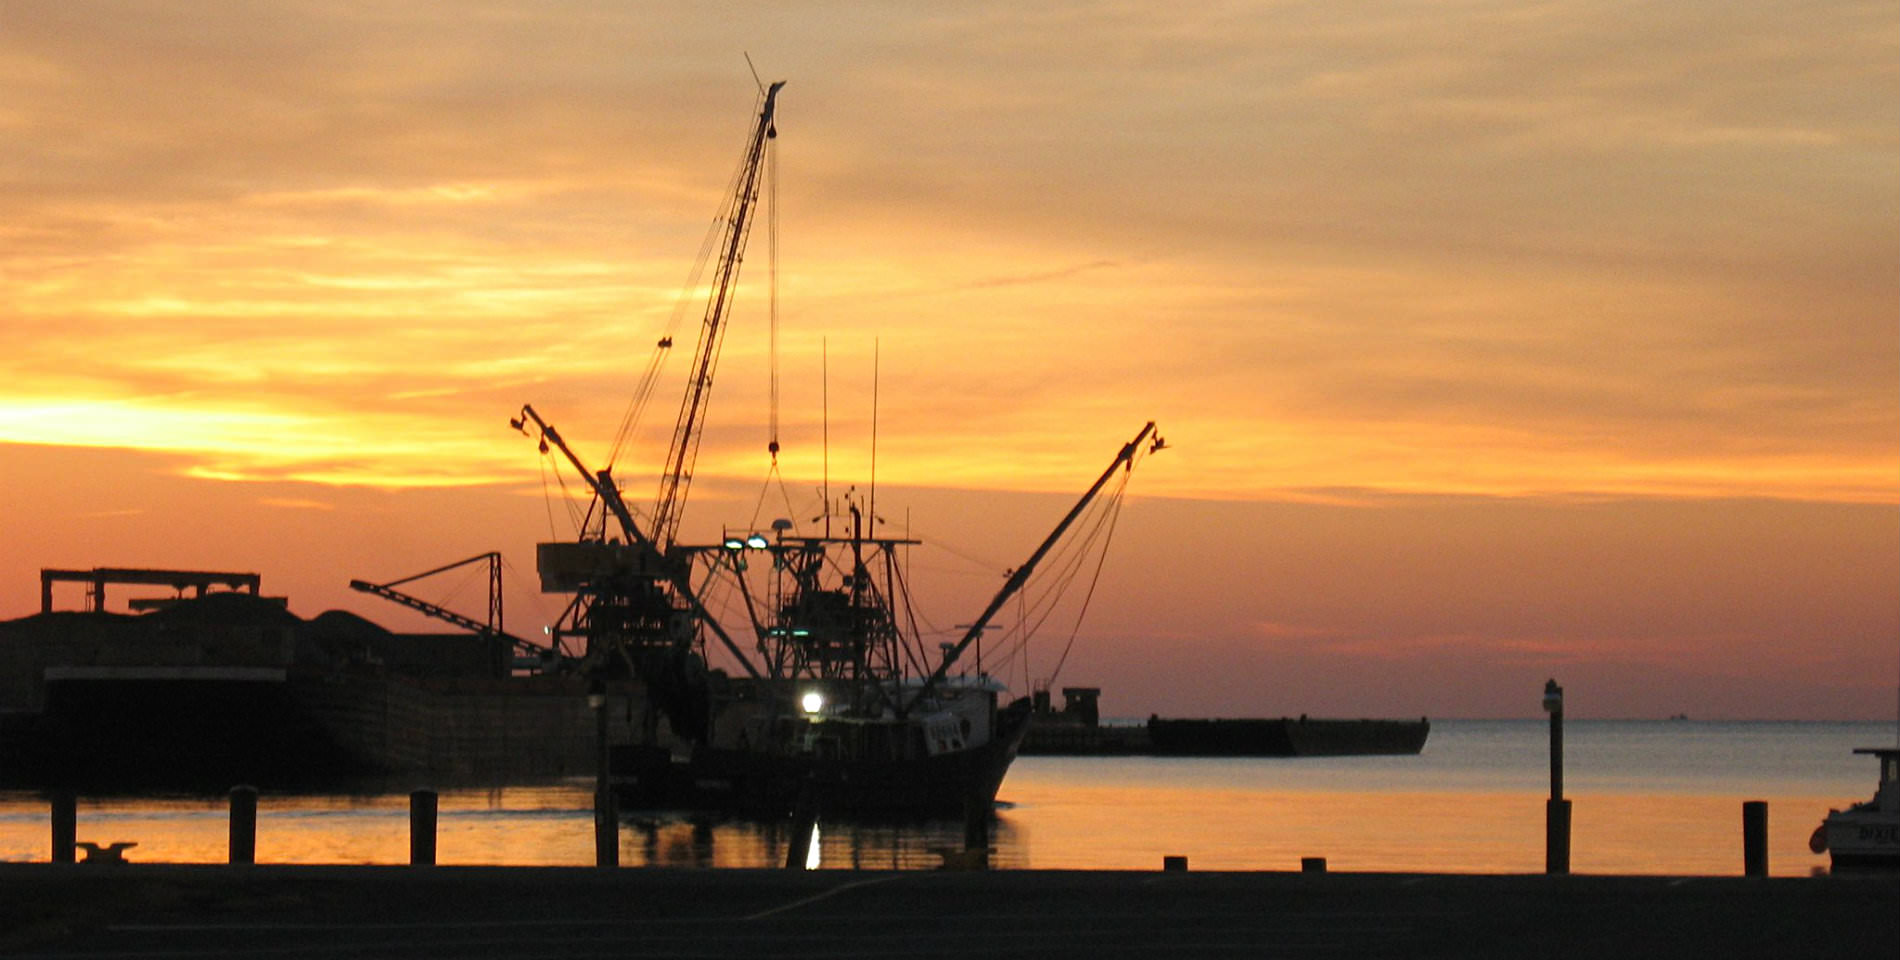 A large crabbing vessel silhouetted near the dock on the Bay with a red and golden sunset in the background.